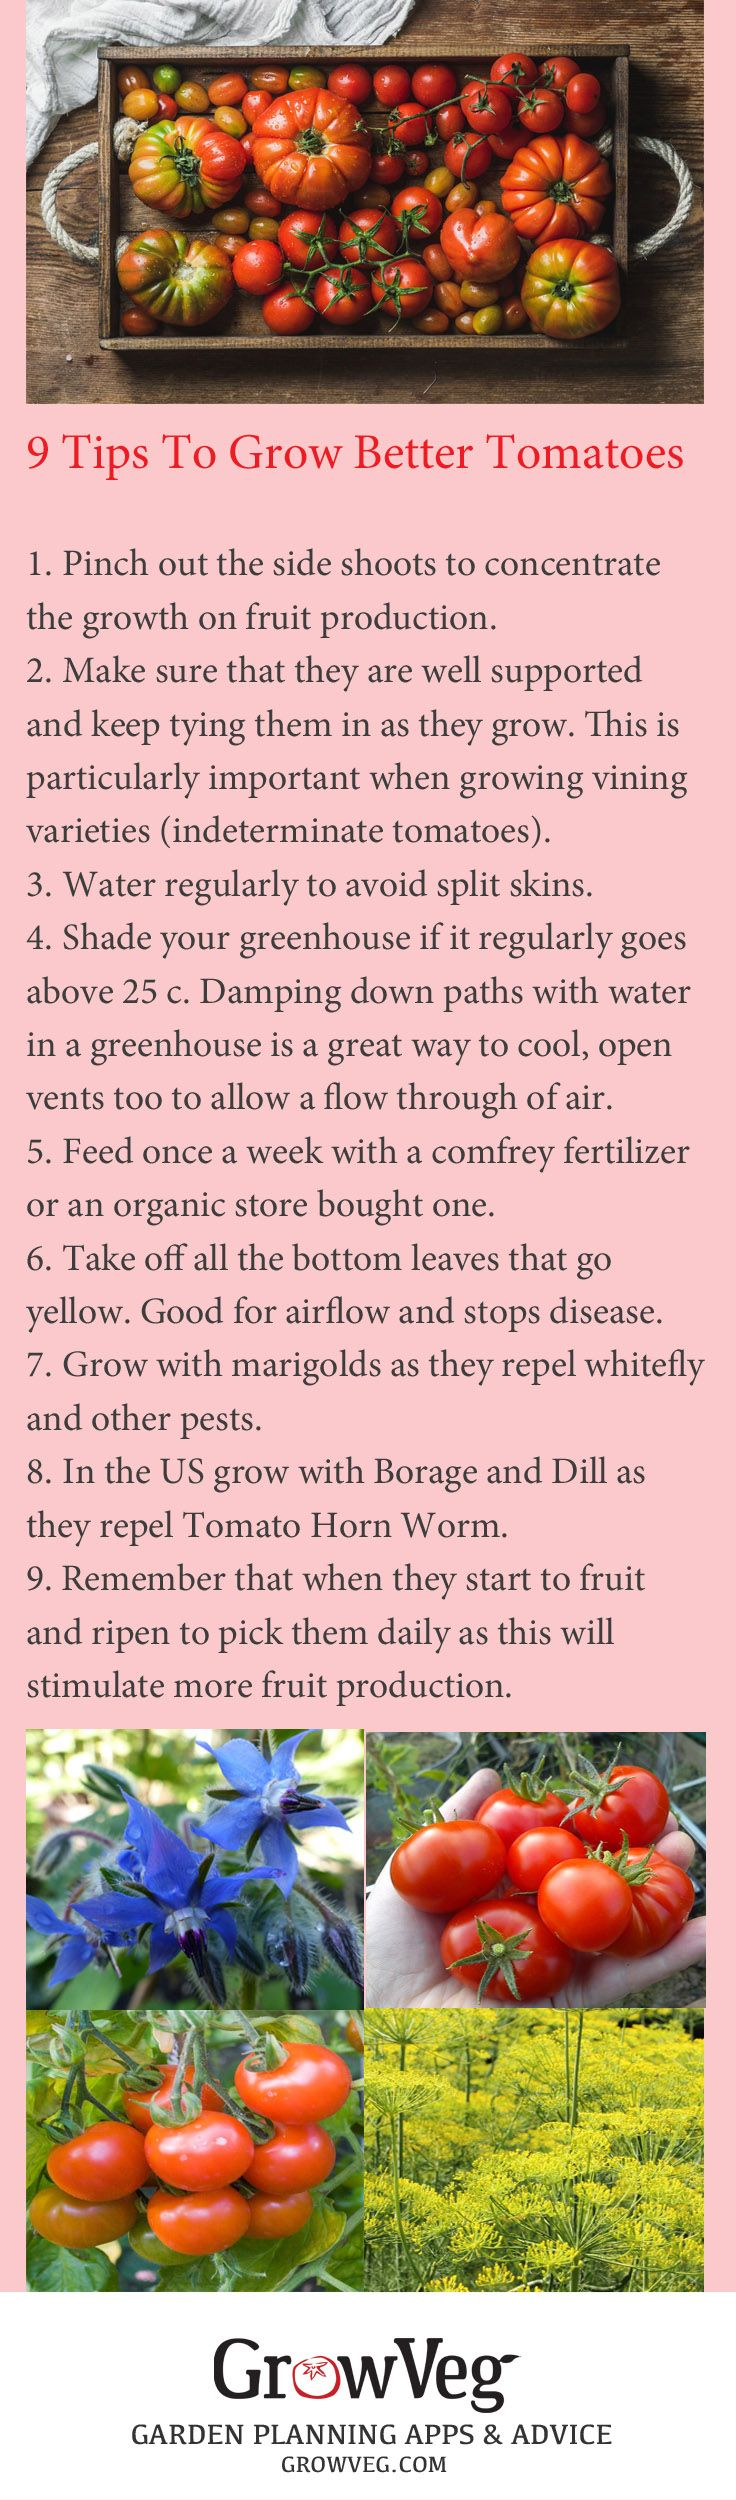 9 Tips To Grow Better Tomatoes from growveg.com